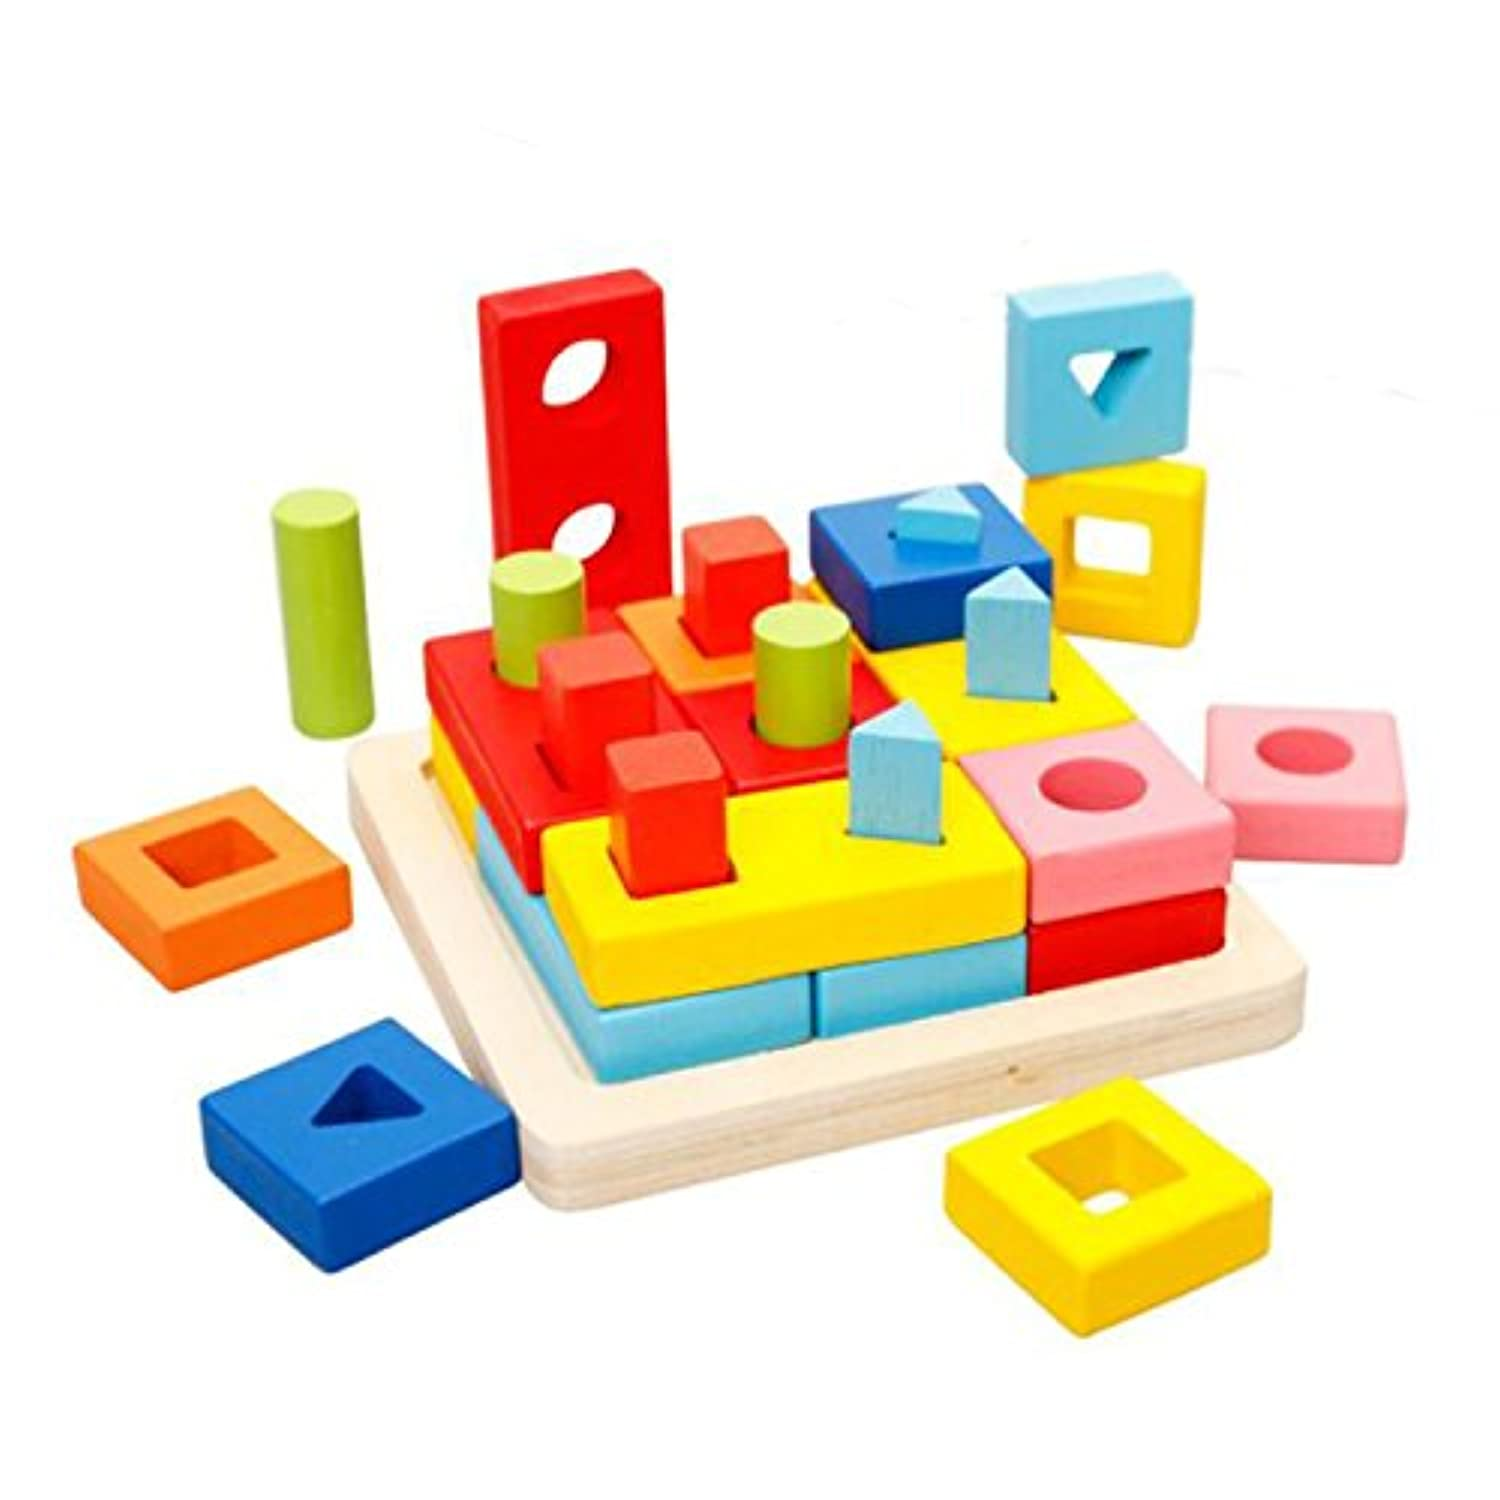 Wooden Puzzle Toddler Educational Toys Shapes Sorter Preschool Geometric Blocks Stacking Games for Kids